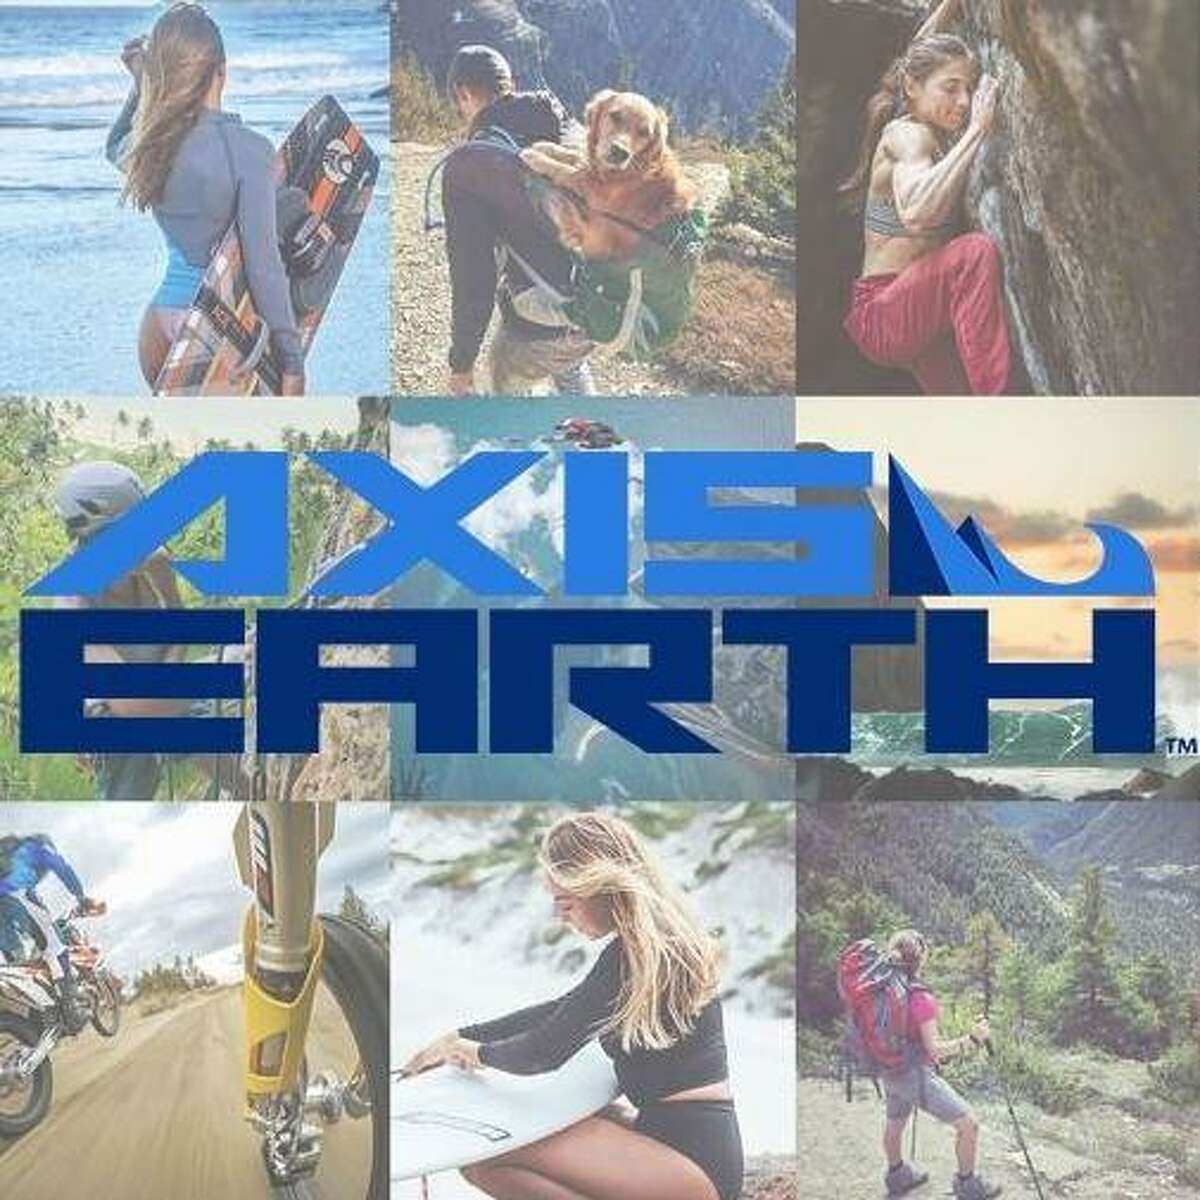 Axis Earth is an app created by Houston brother and sister Jeff and Sarah Long, as an effort to help outdoor sport enthusiasts connect with each other.